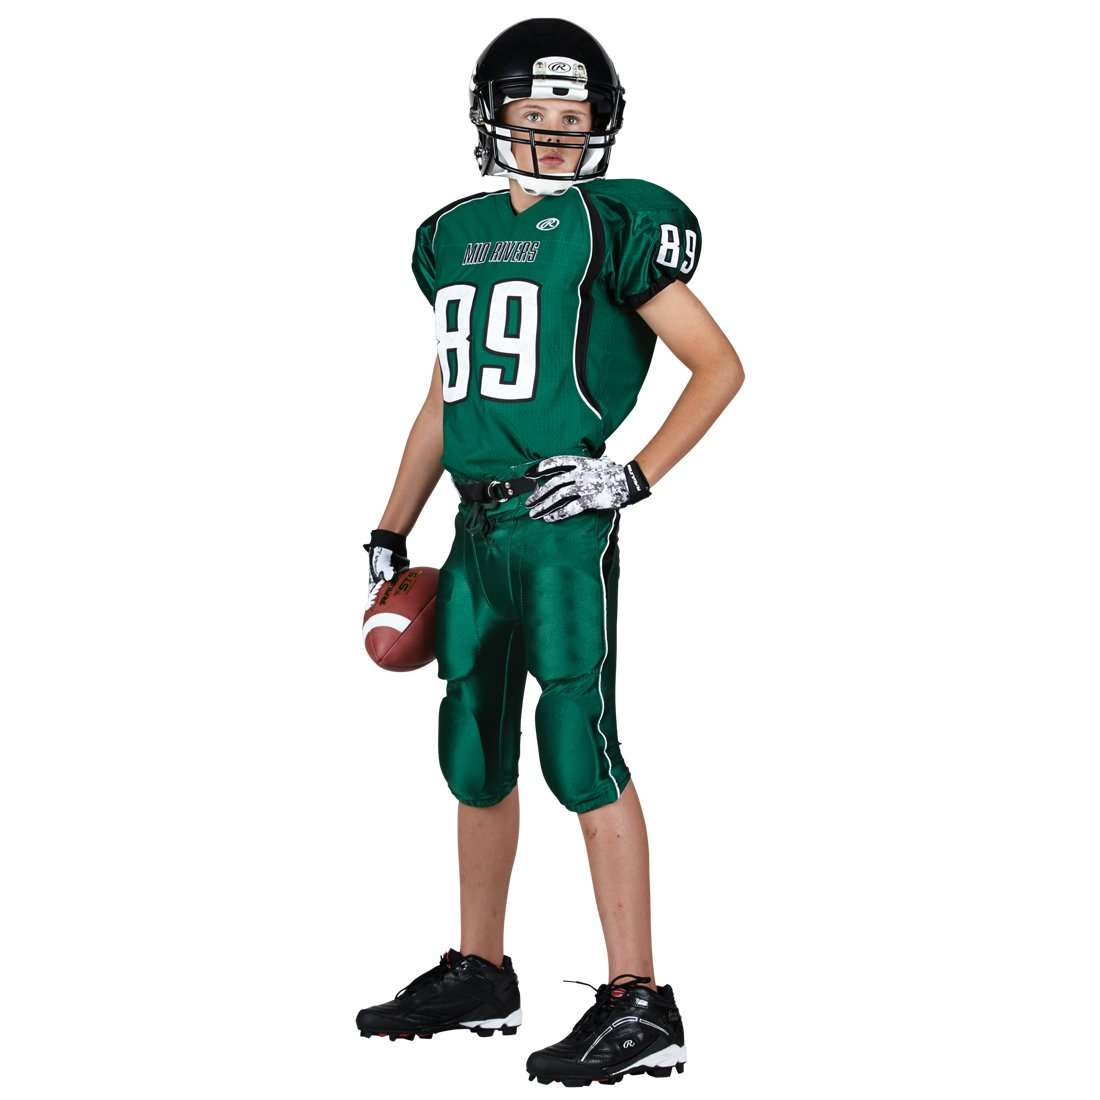 ac4bc9fd9 Rawlings Adult Tackle Twill Football Jersey - Mid Rivers - League Outfitters